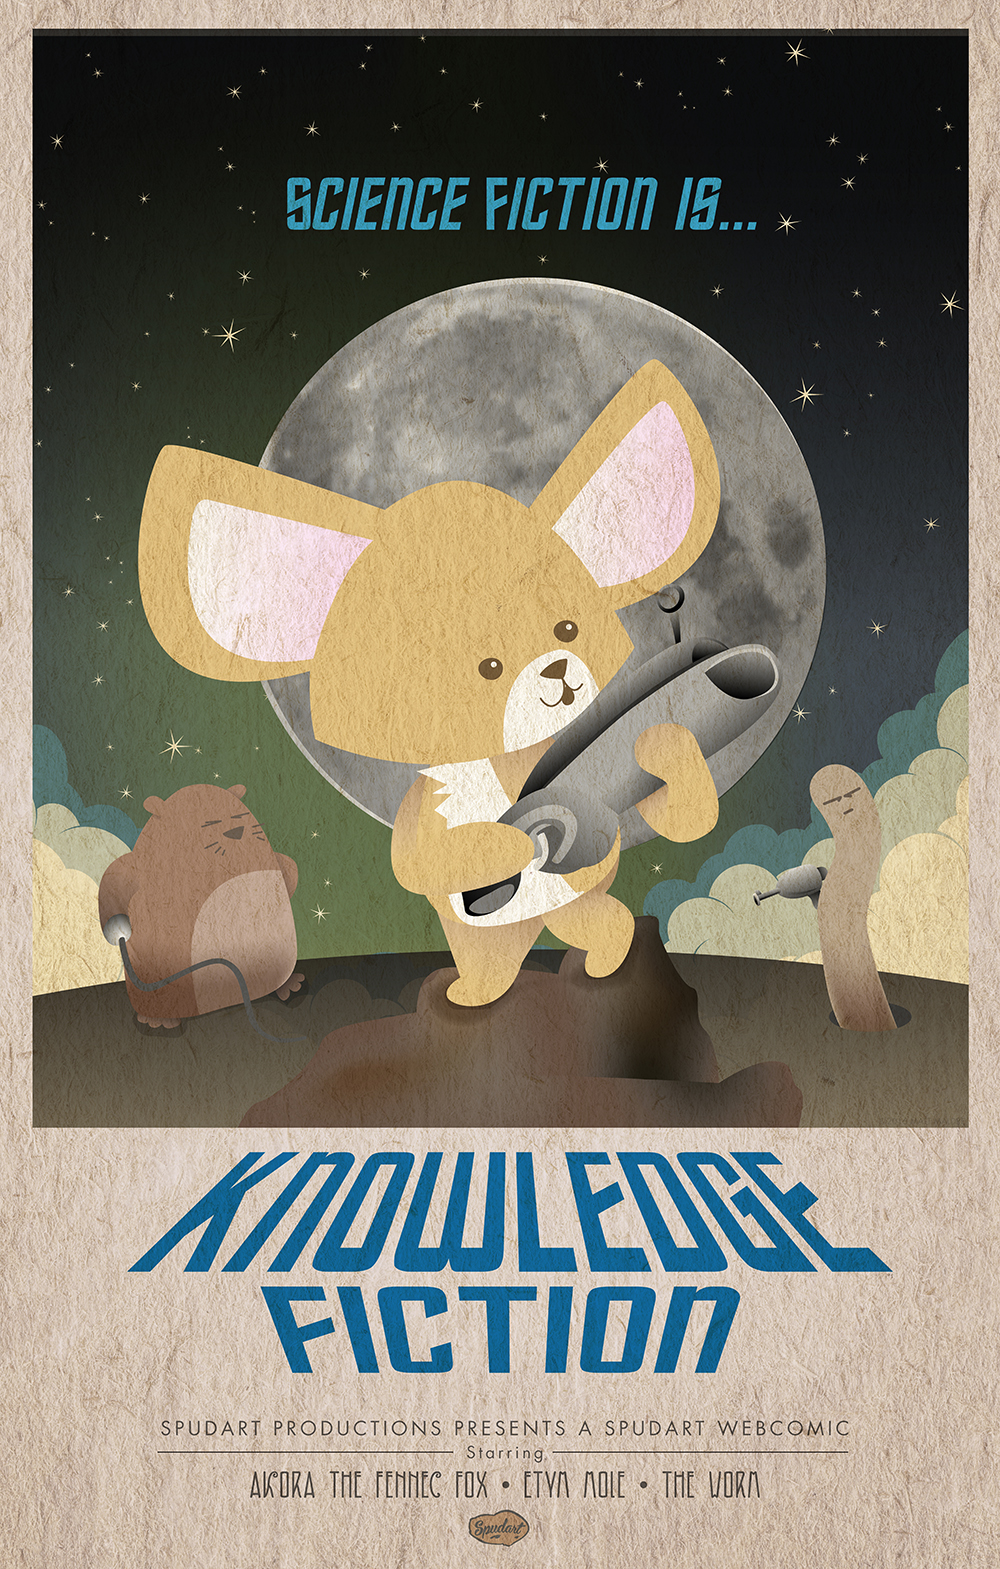 Sci fi is Knowledge Fiction vintage poster